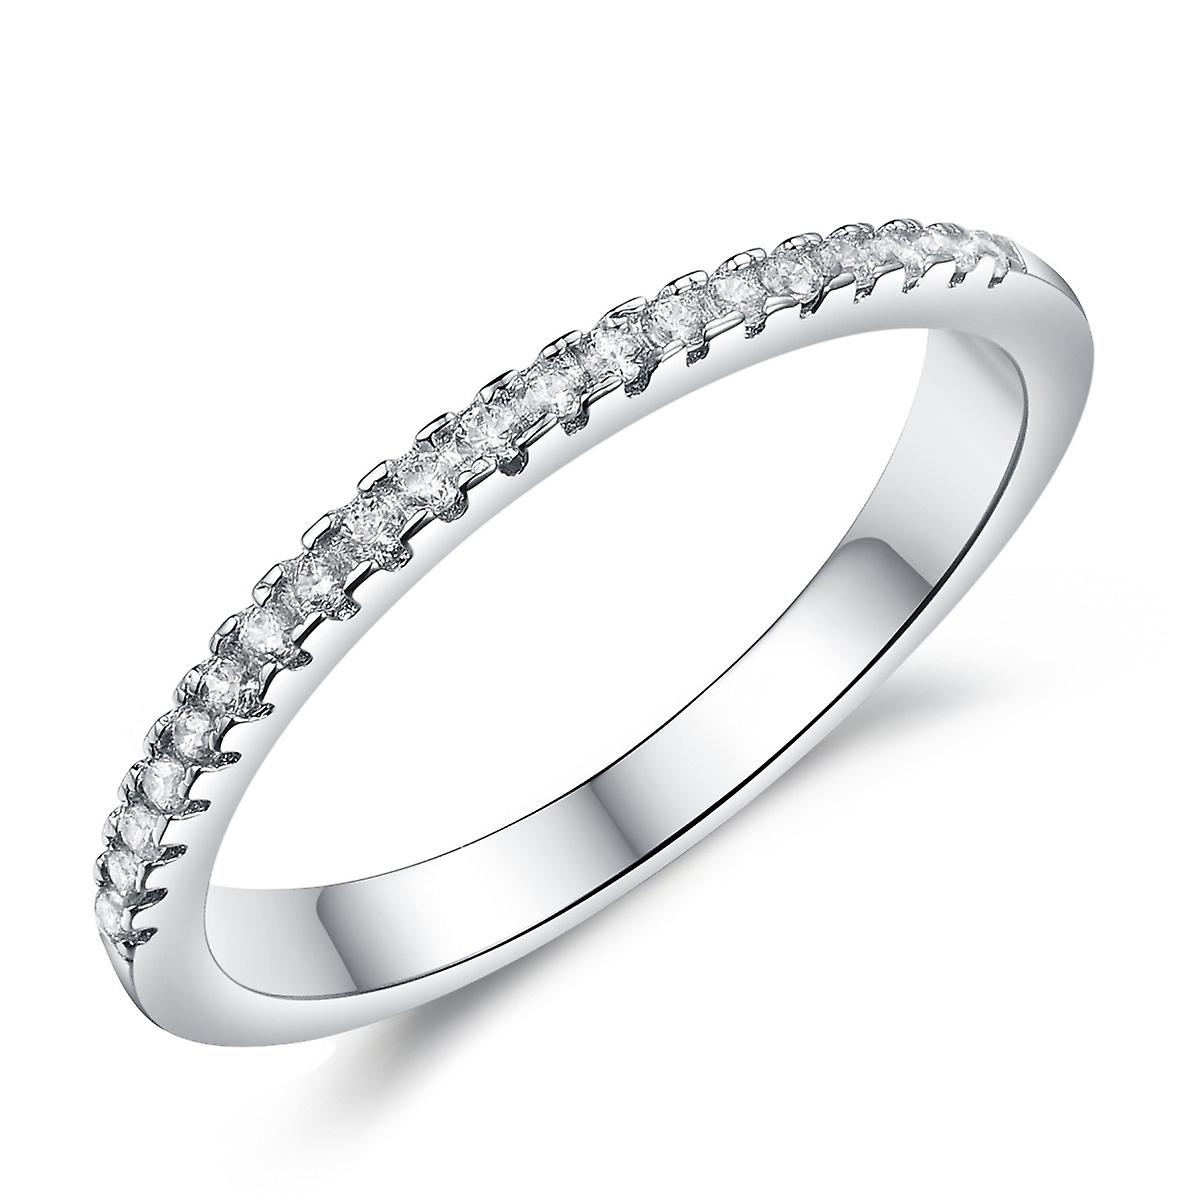 925 Sterling Silver Clawset Eternity 1 Row Band